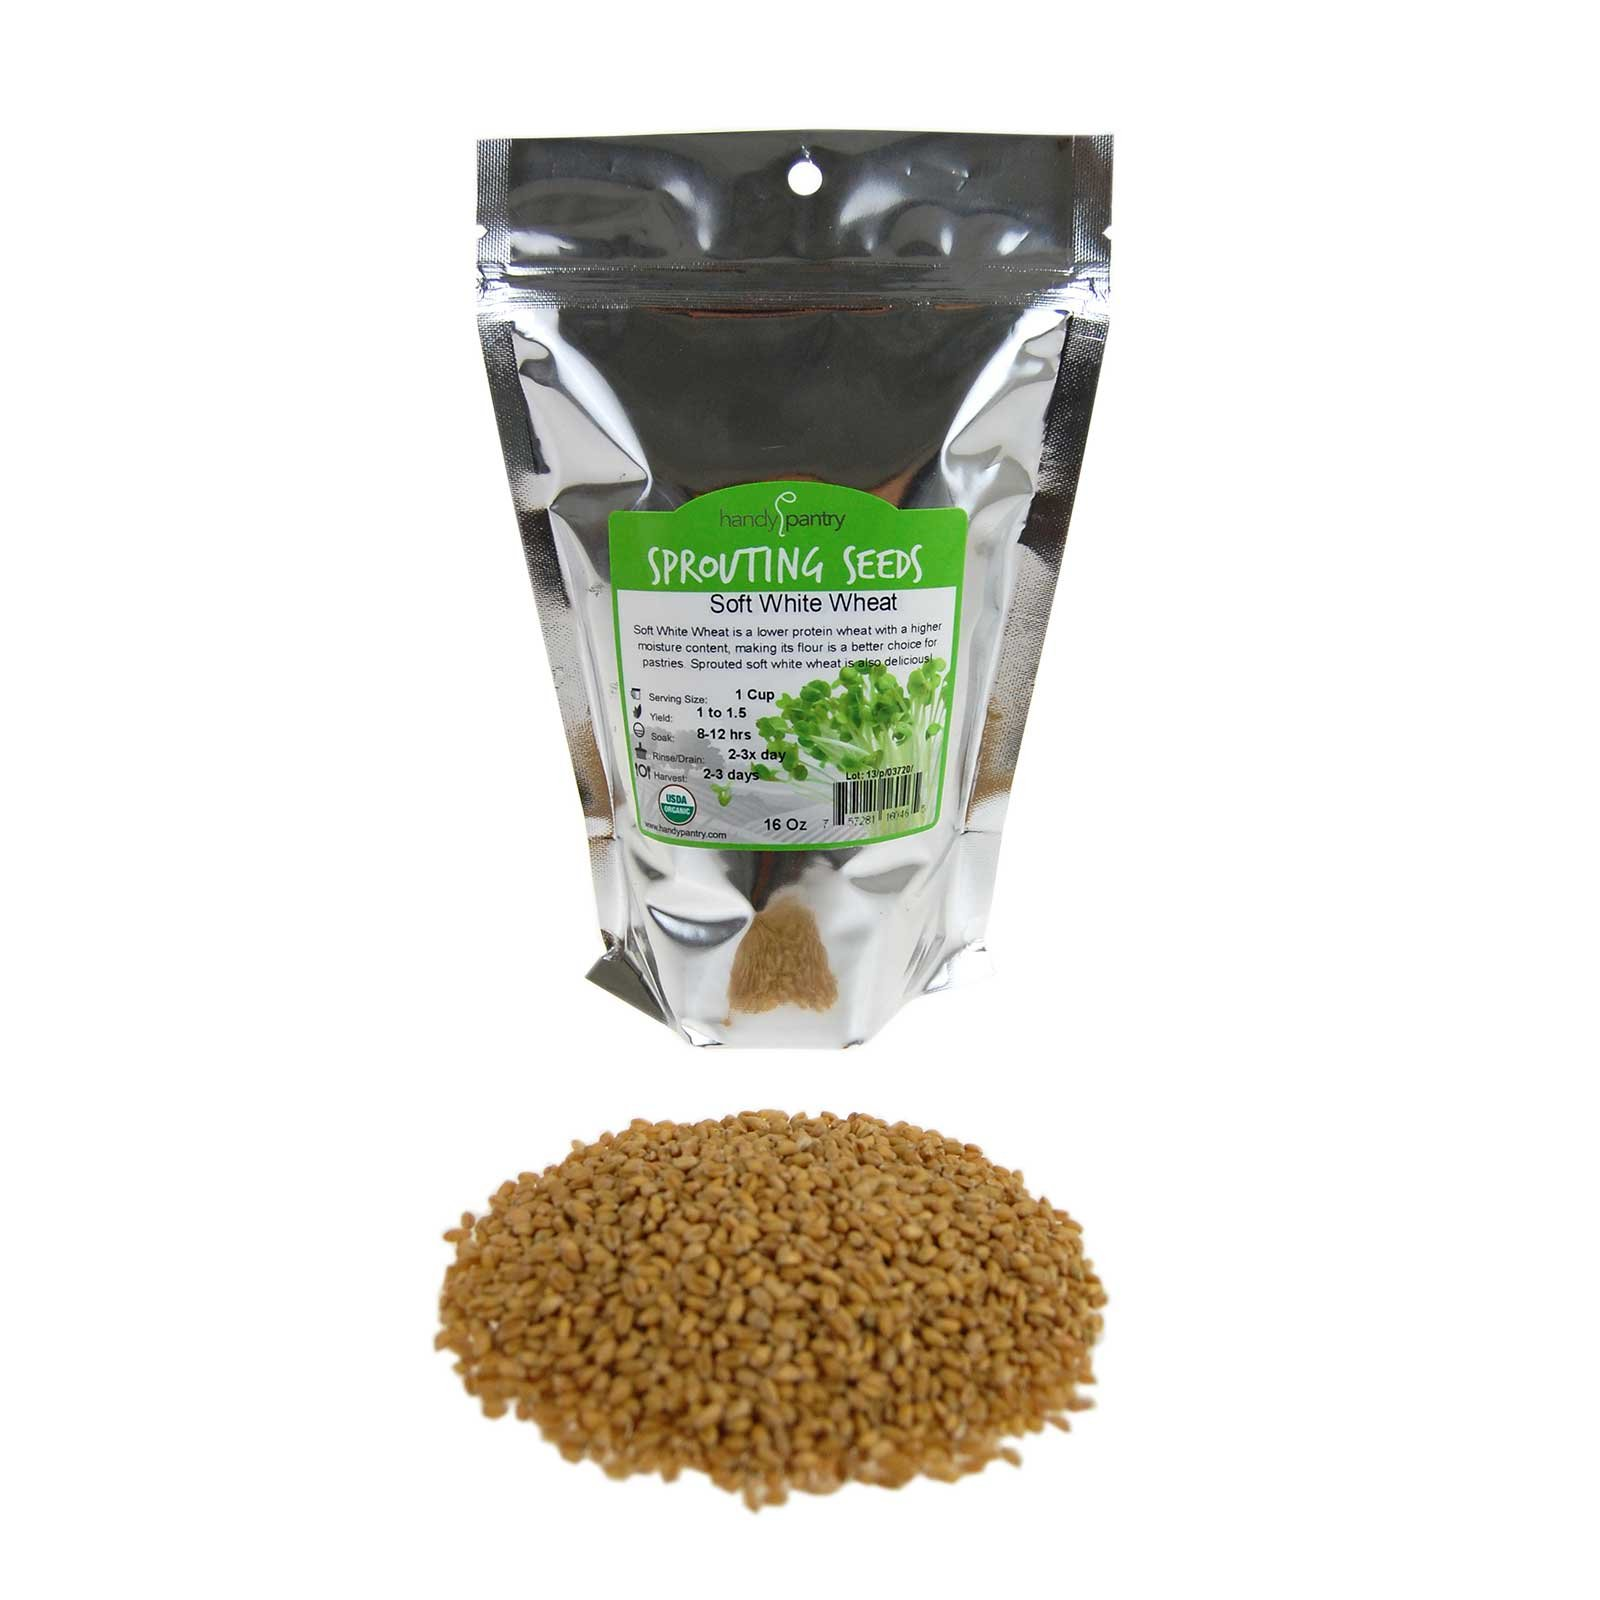 Soft White Wheat - Organic - 1 Lbs. Resealable Pouch - Handy Pantry Brand - Perfect for Food Storage, Flour, Baking, Sprouting & More